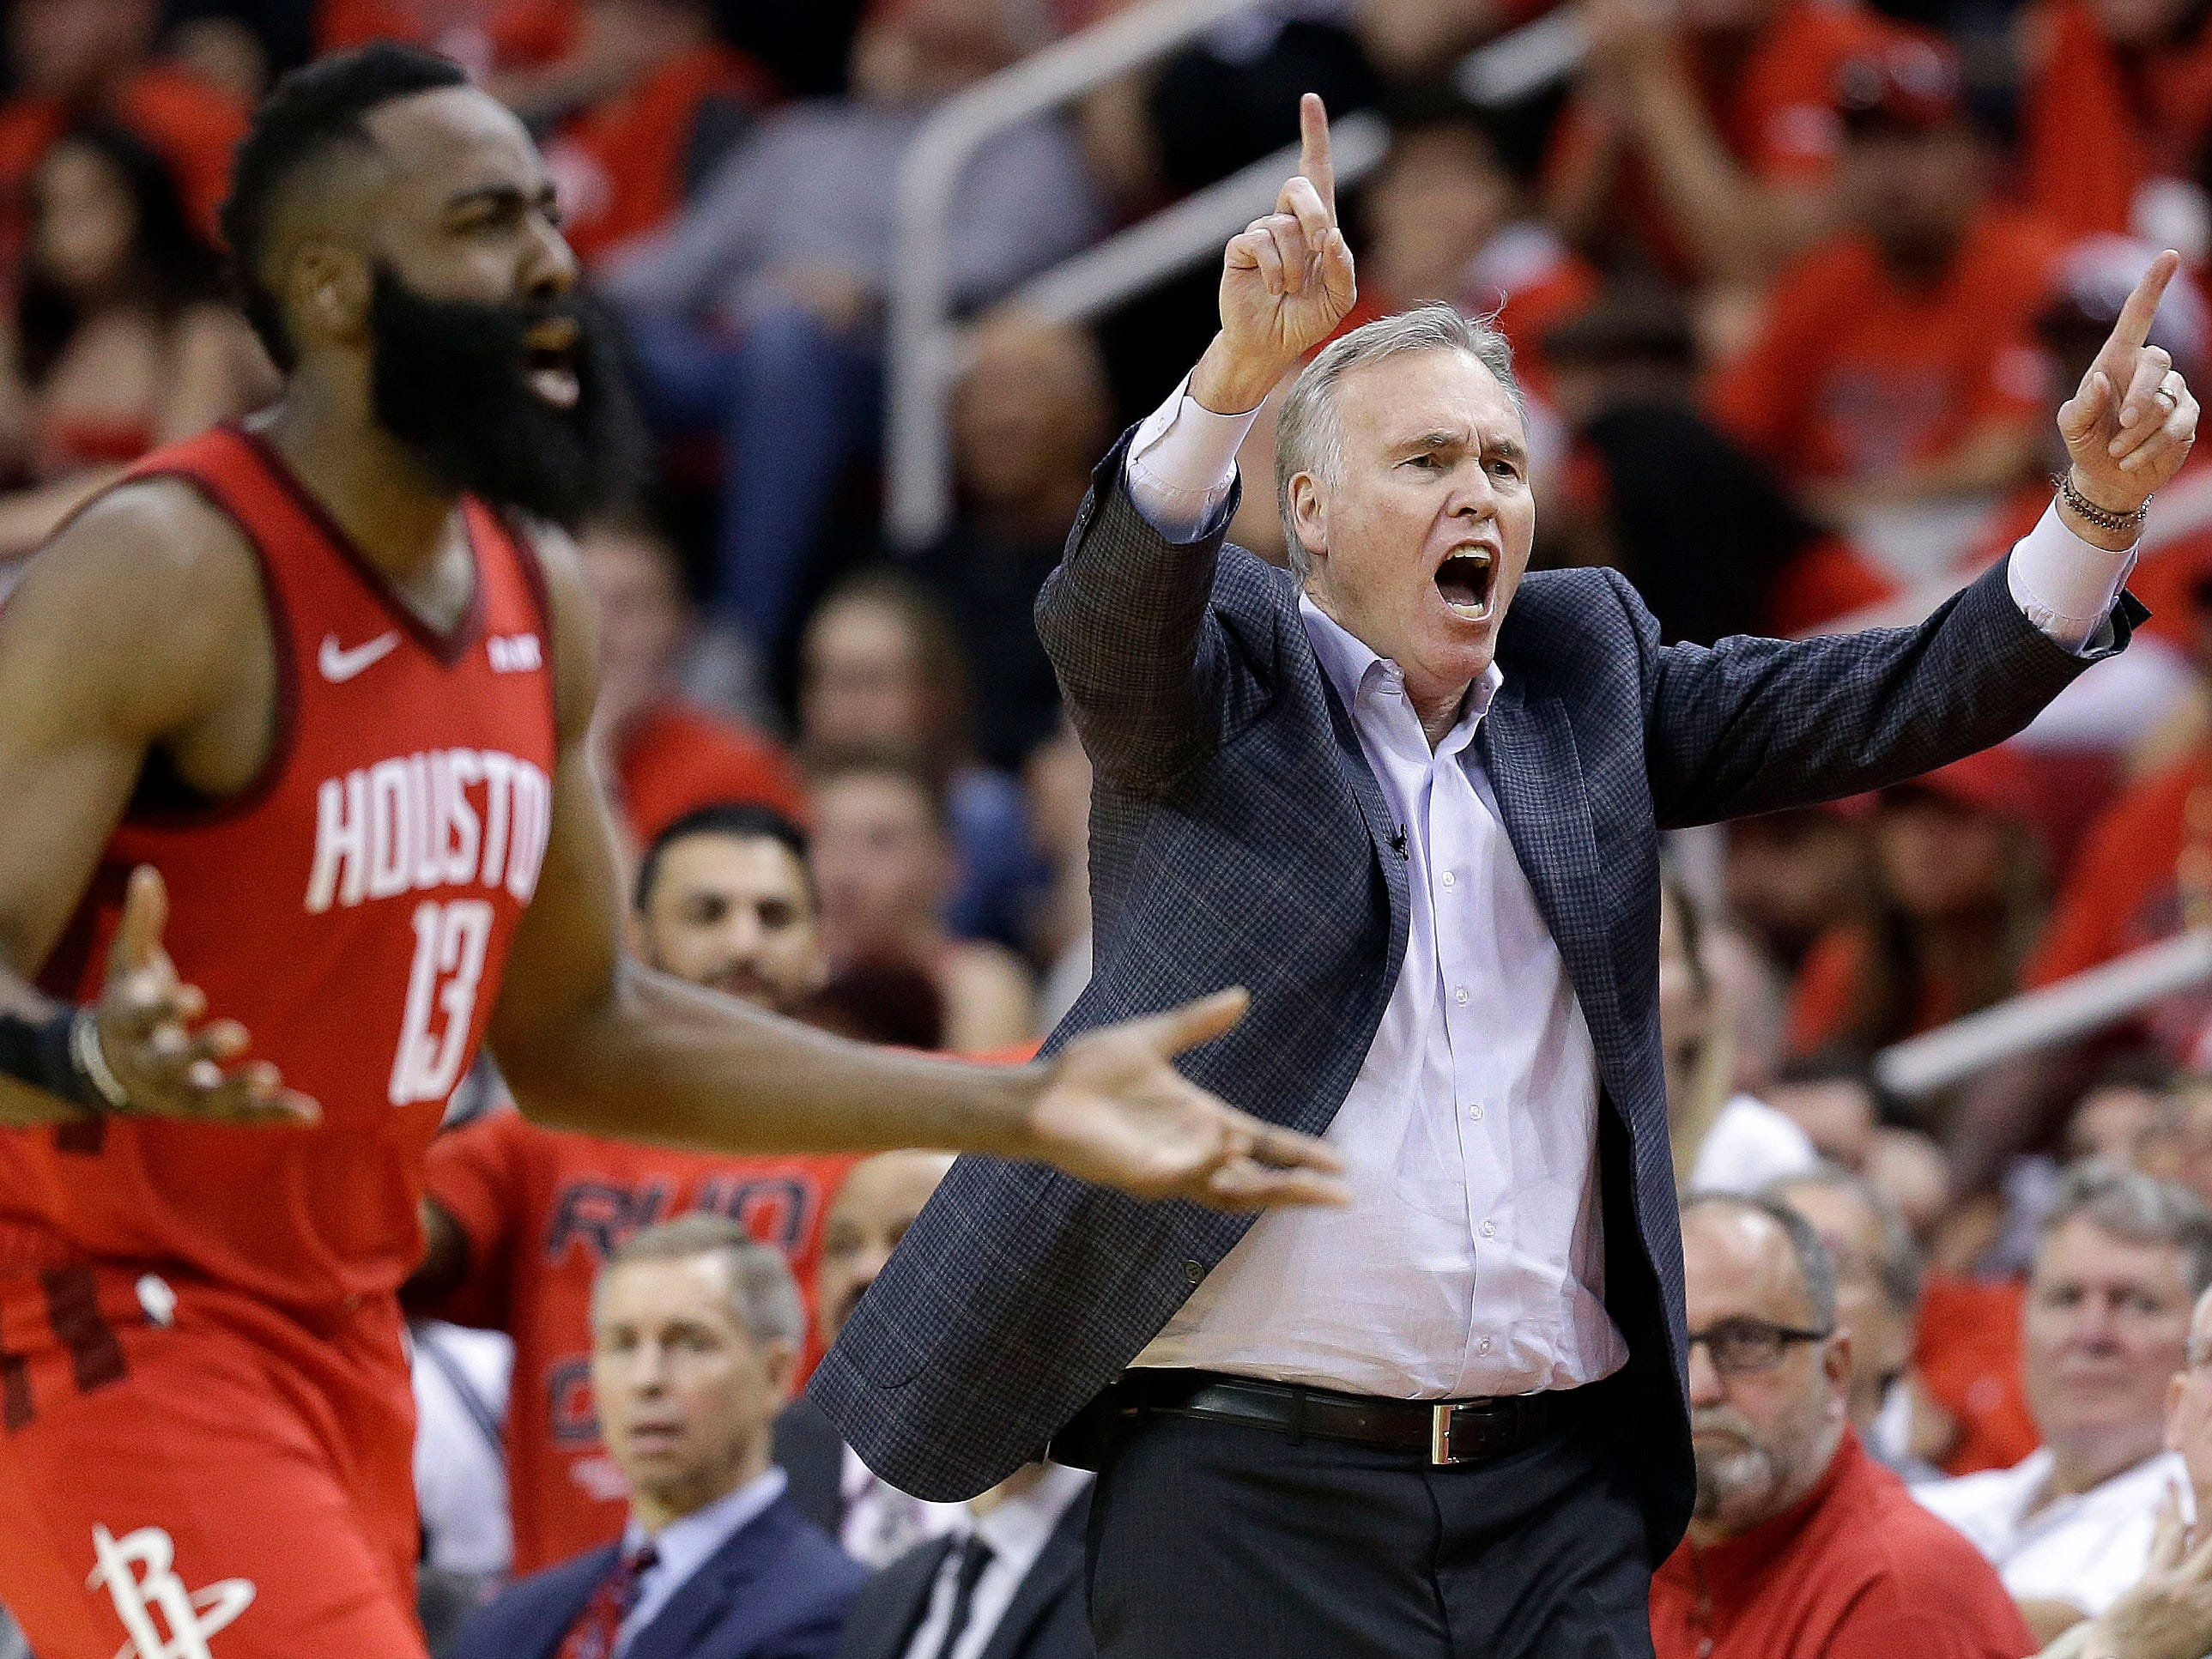 April 14: Rockets head coach Mike D'Antoni and guard James Harden react to a call during the second half of Game 1 against the Jazz.